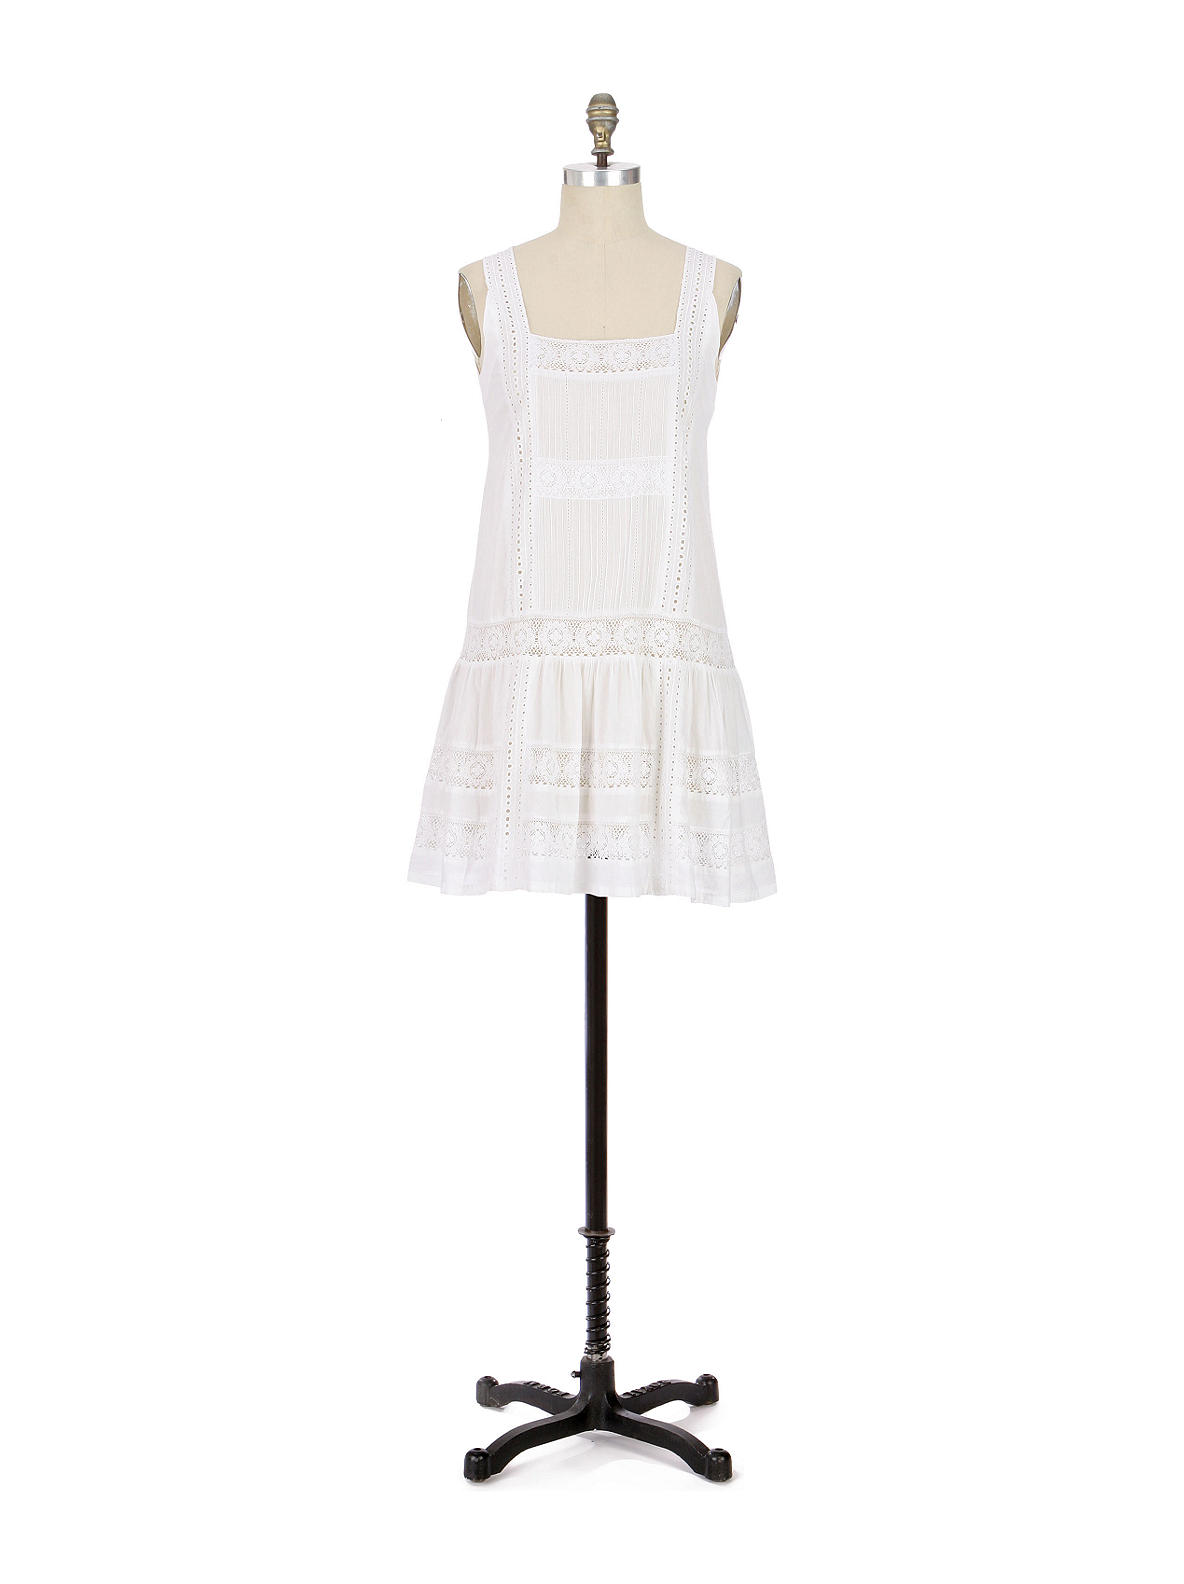 Snoozing Twenties Chemise - Anthropologie.com :  twenties dress retro flapper